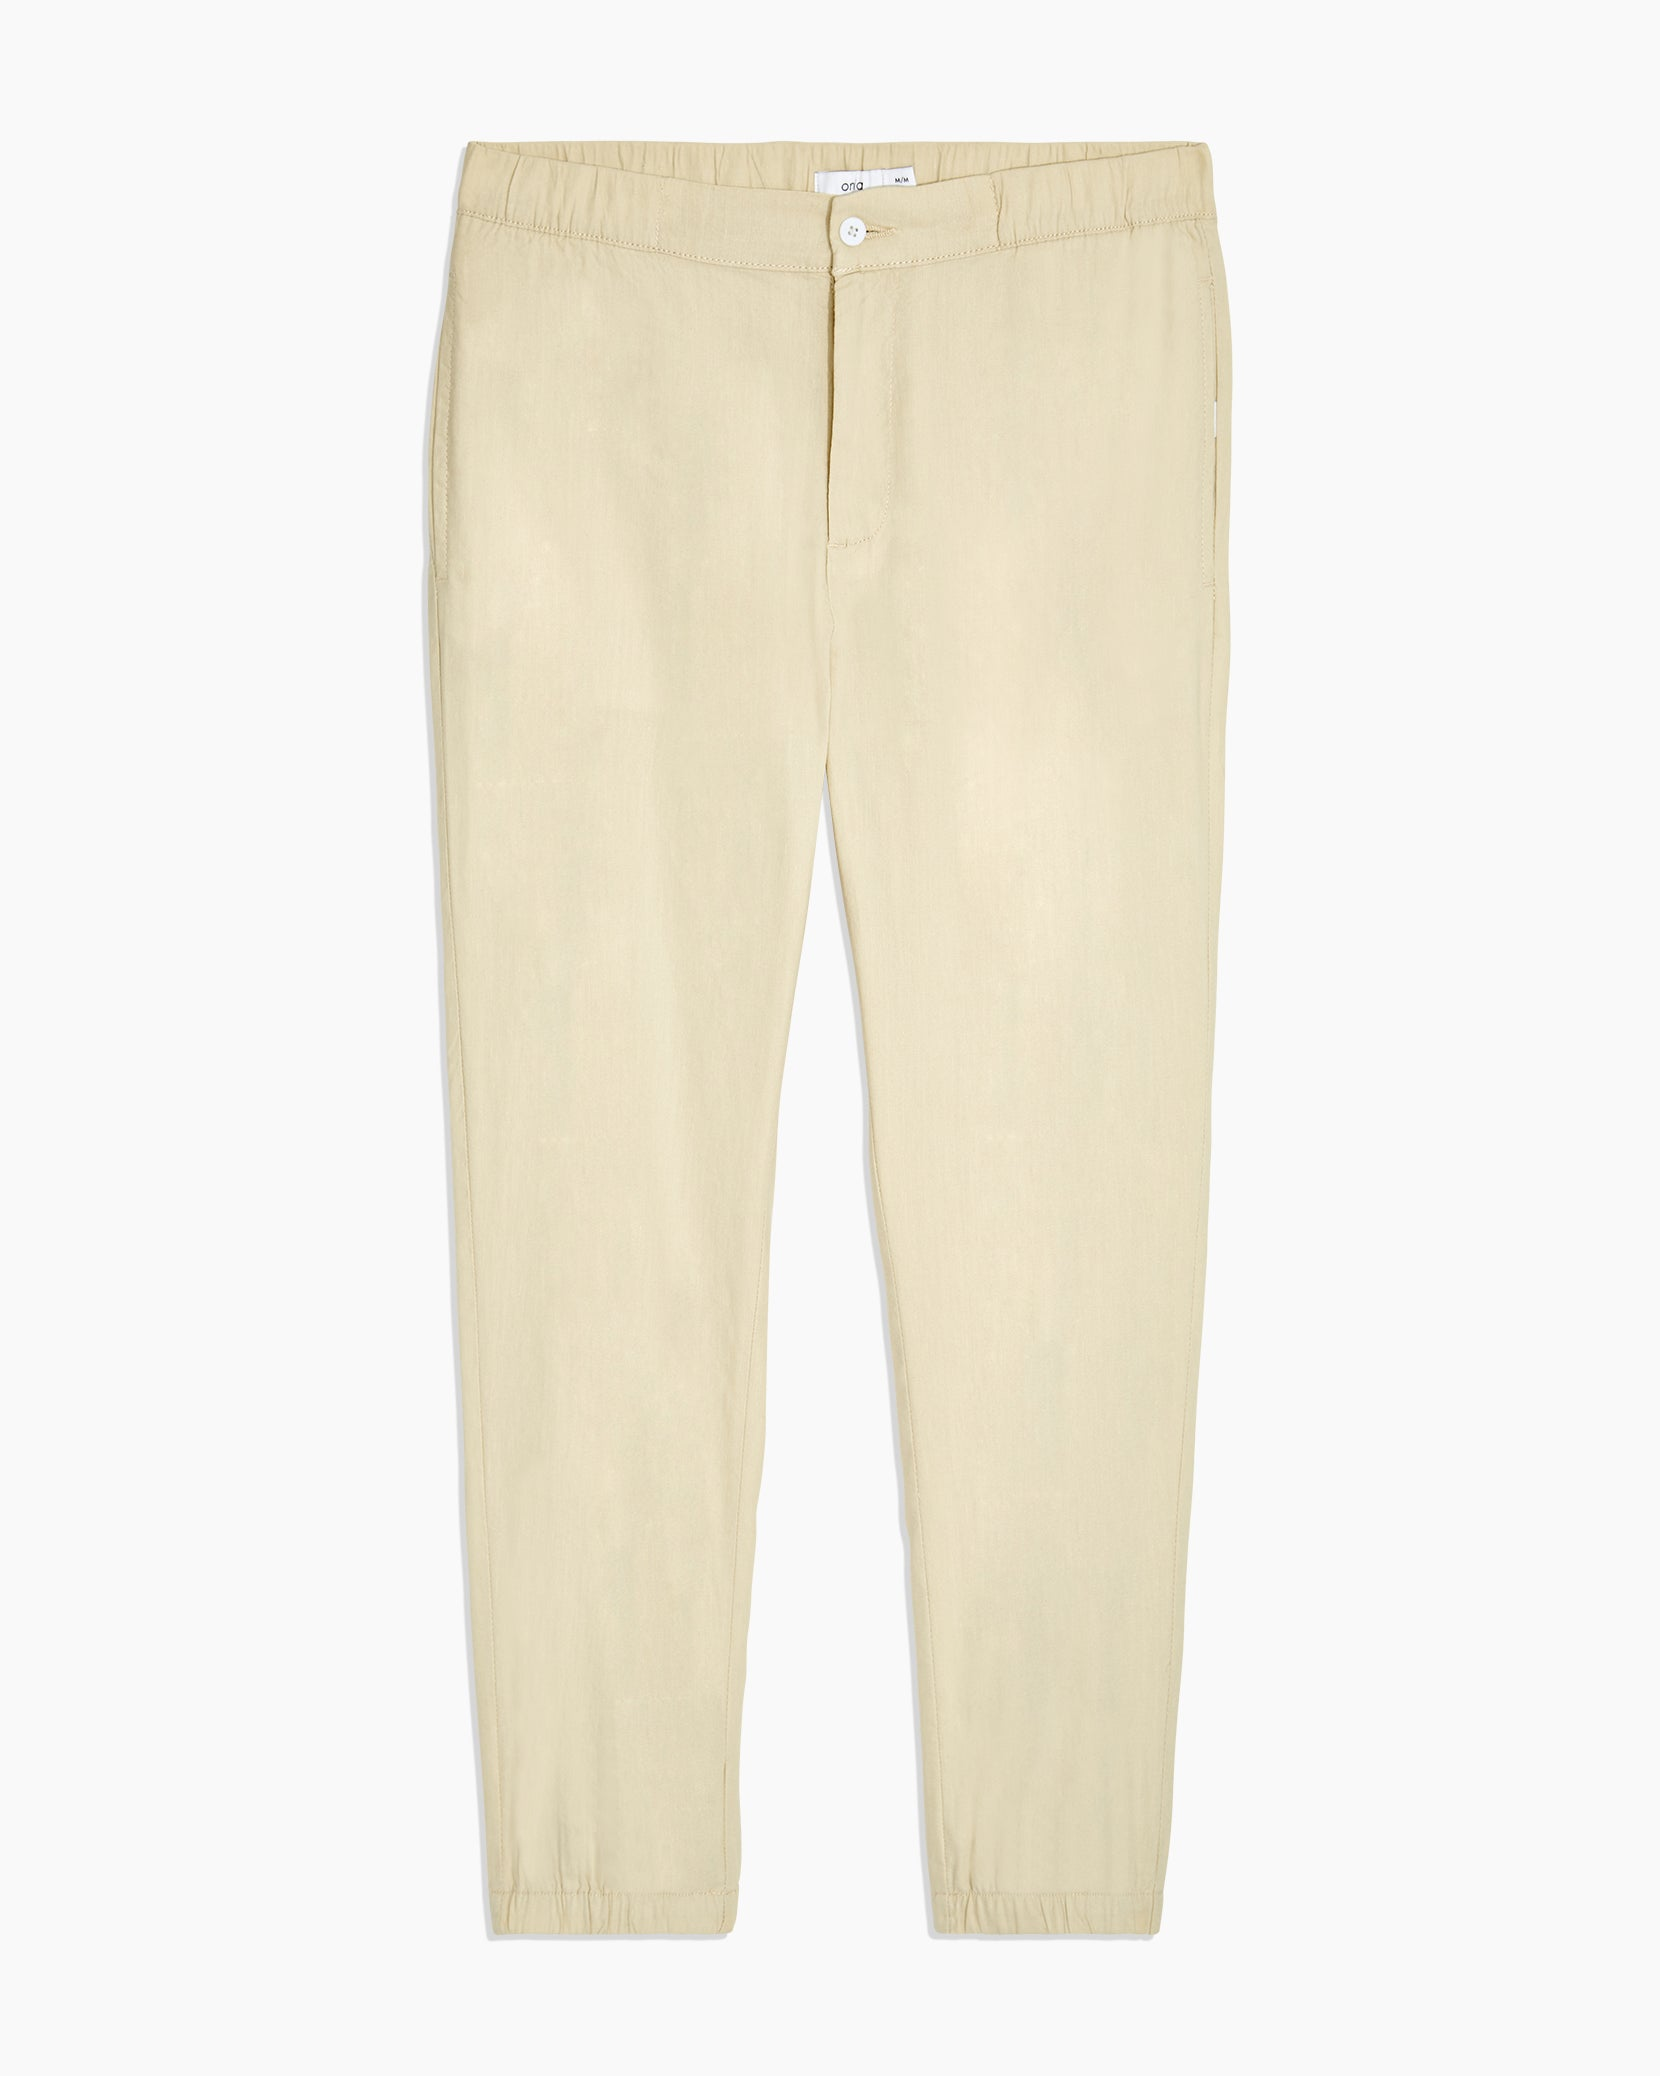 Elijah Stretch Linen Pant in Beige - 1 - Onia